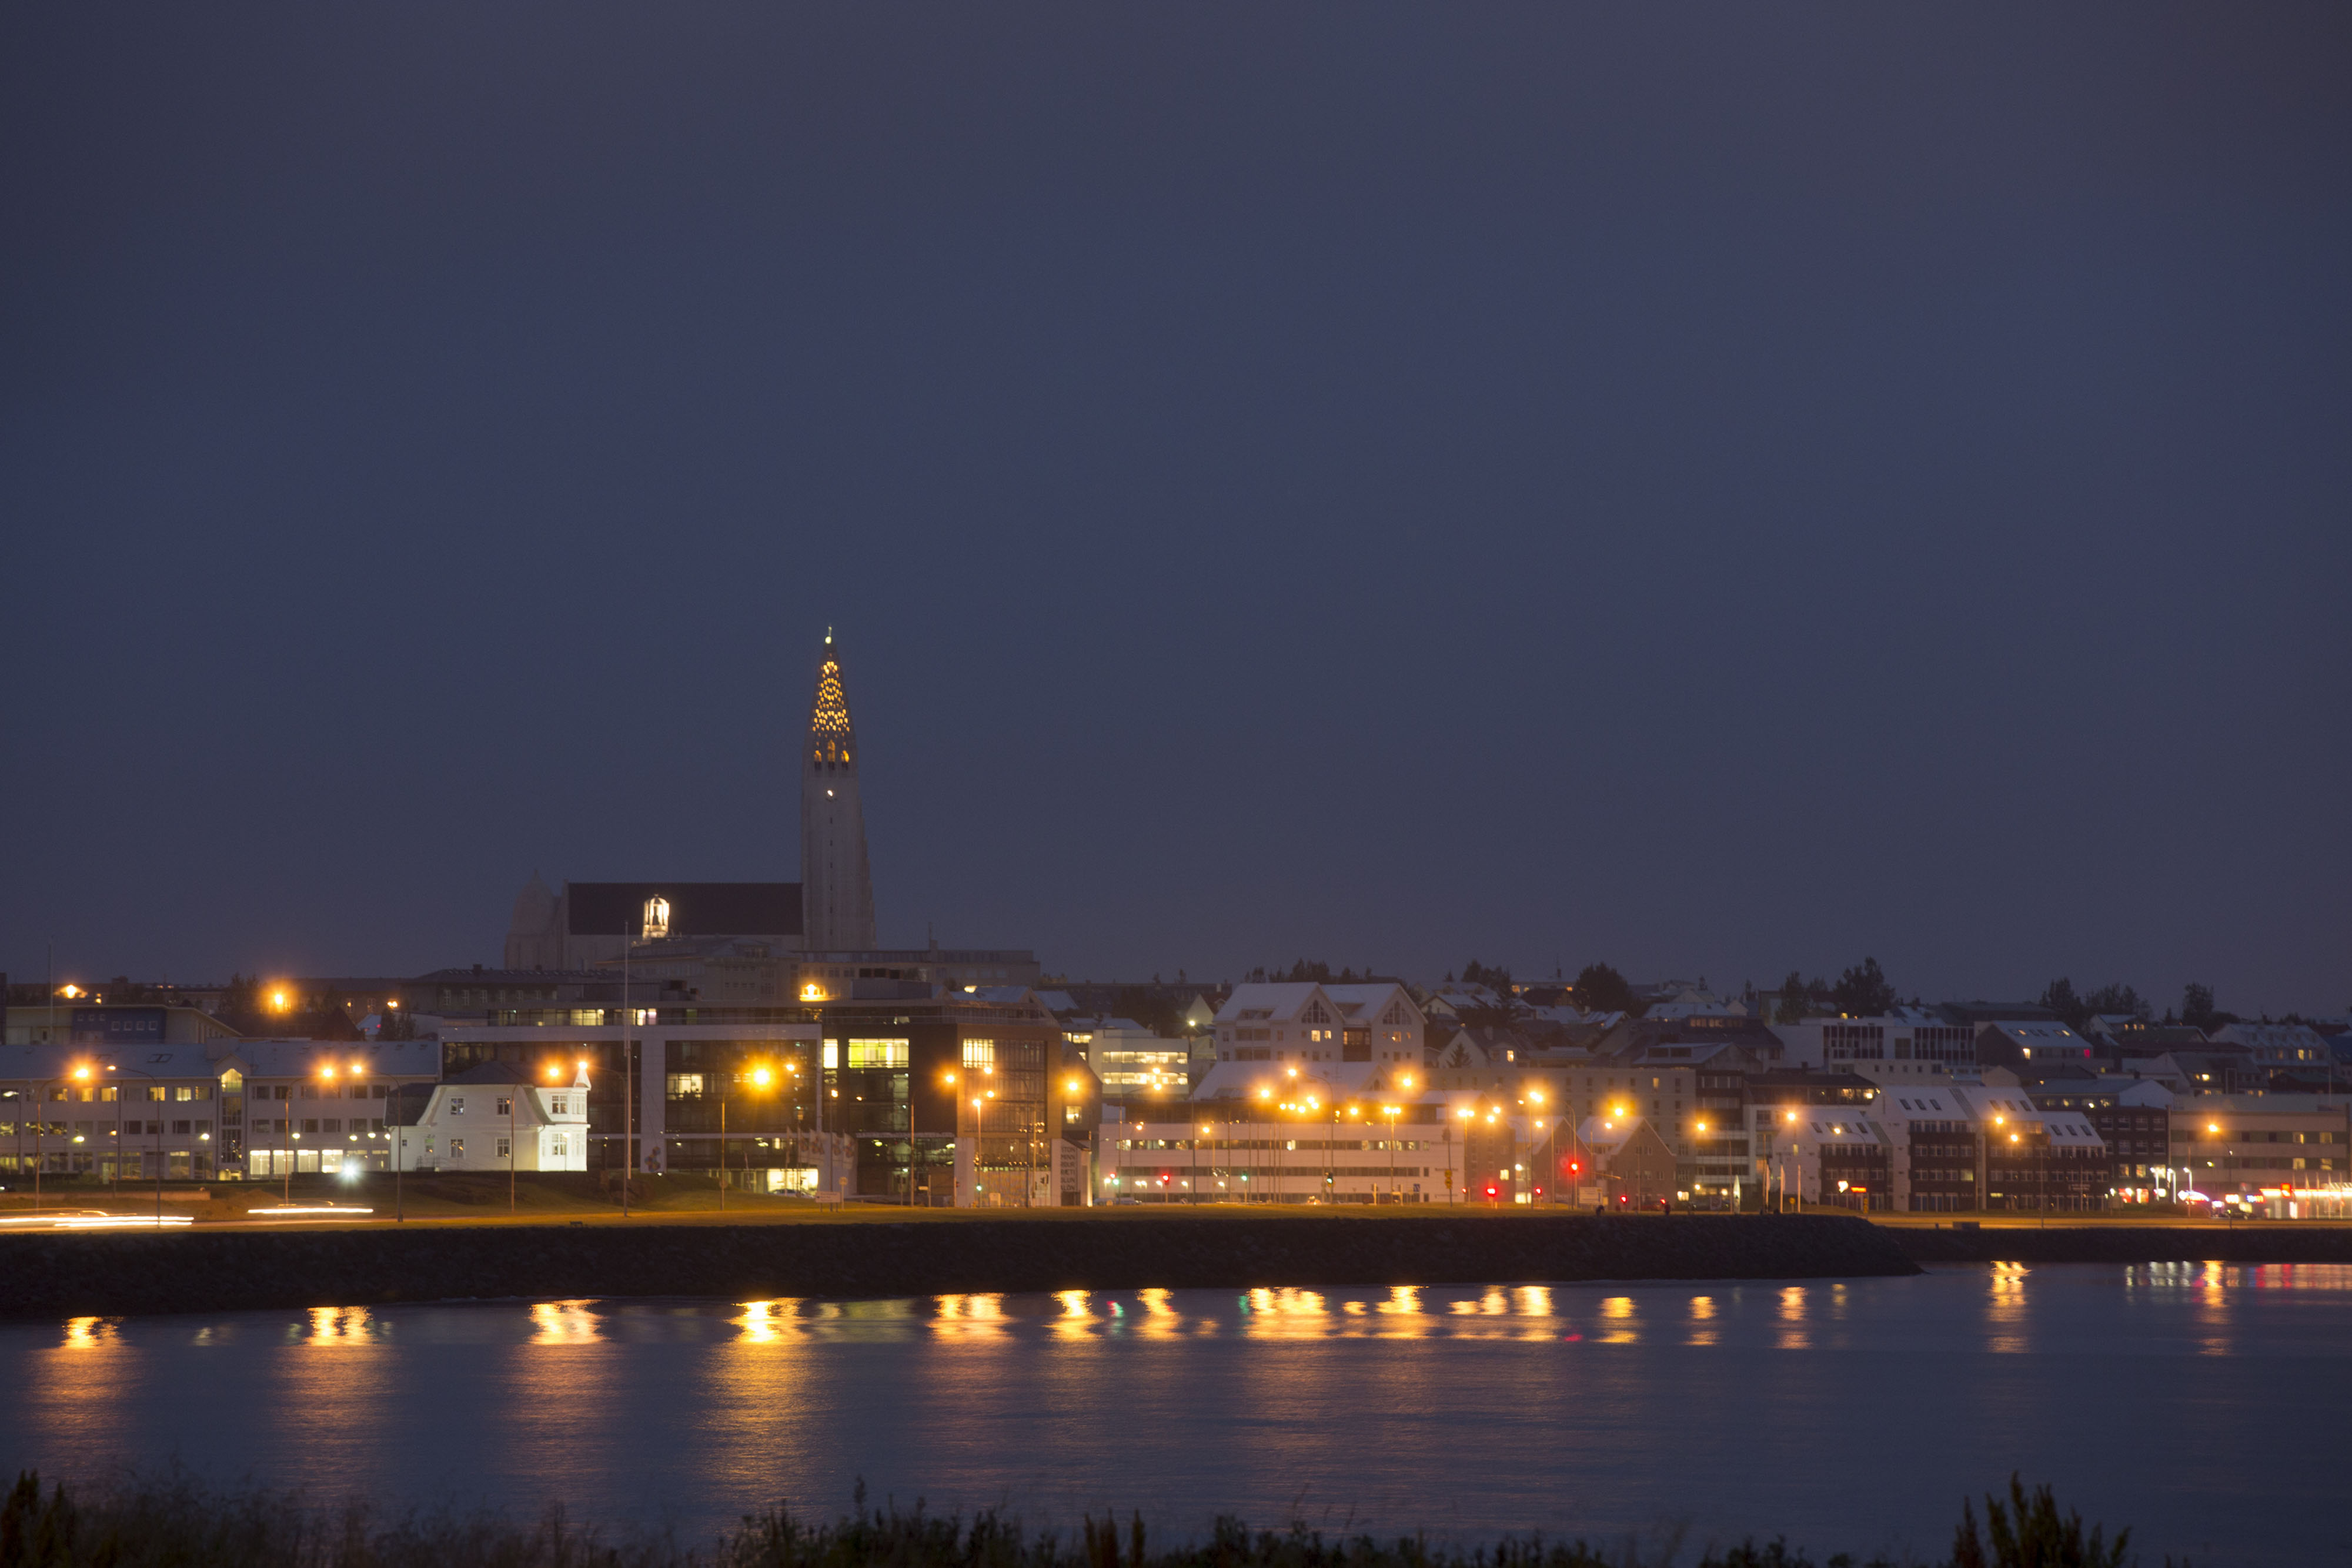 The city skyline is seen illuminated by lights at night in Reykjavik, Iceland, on Friday, Aug. 10, 2012.